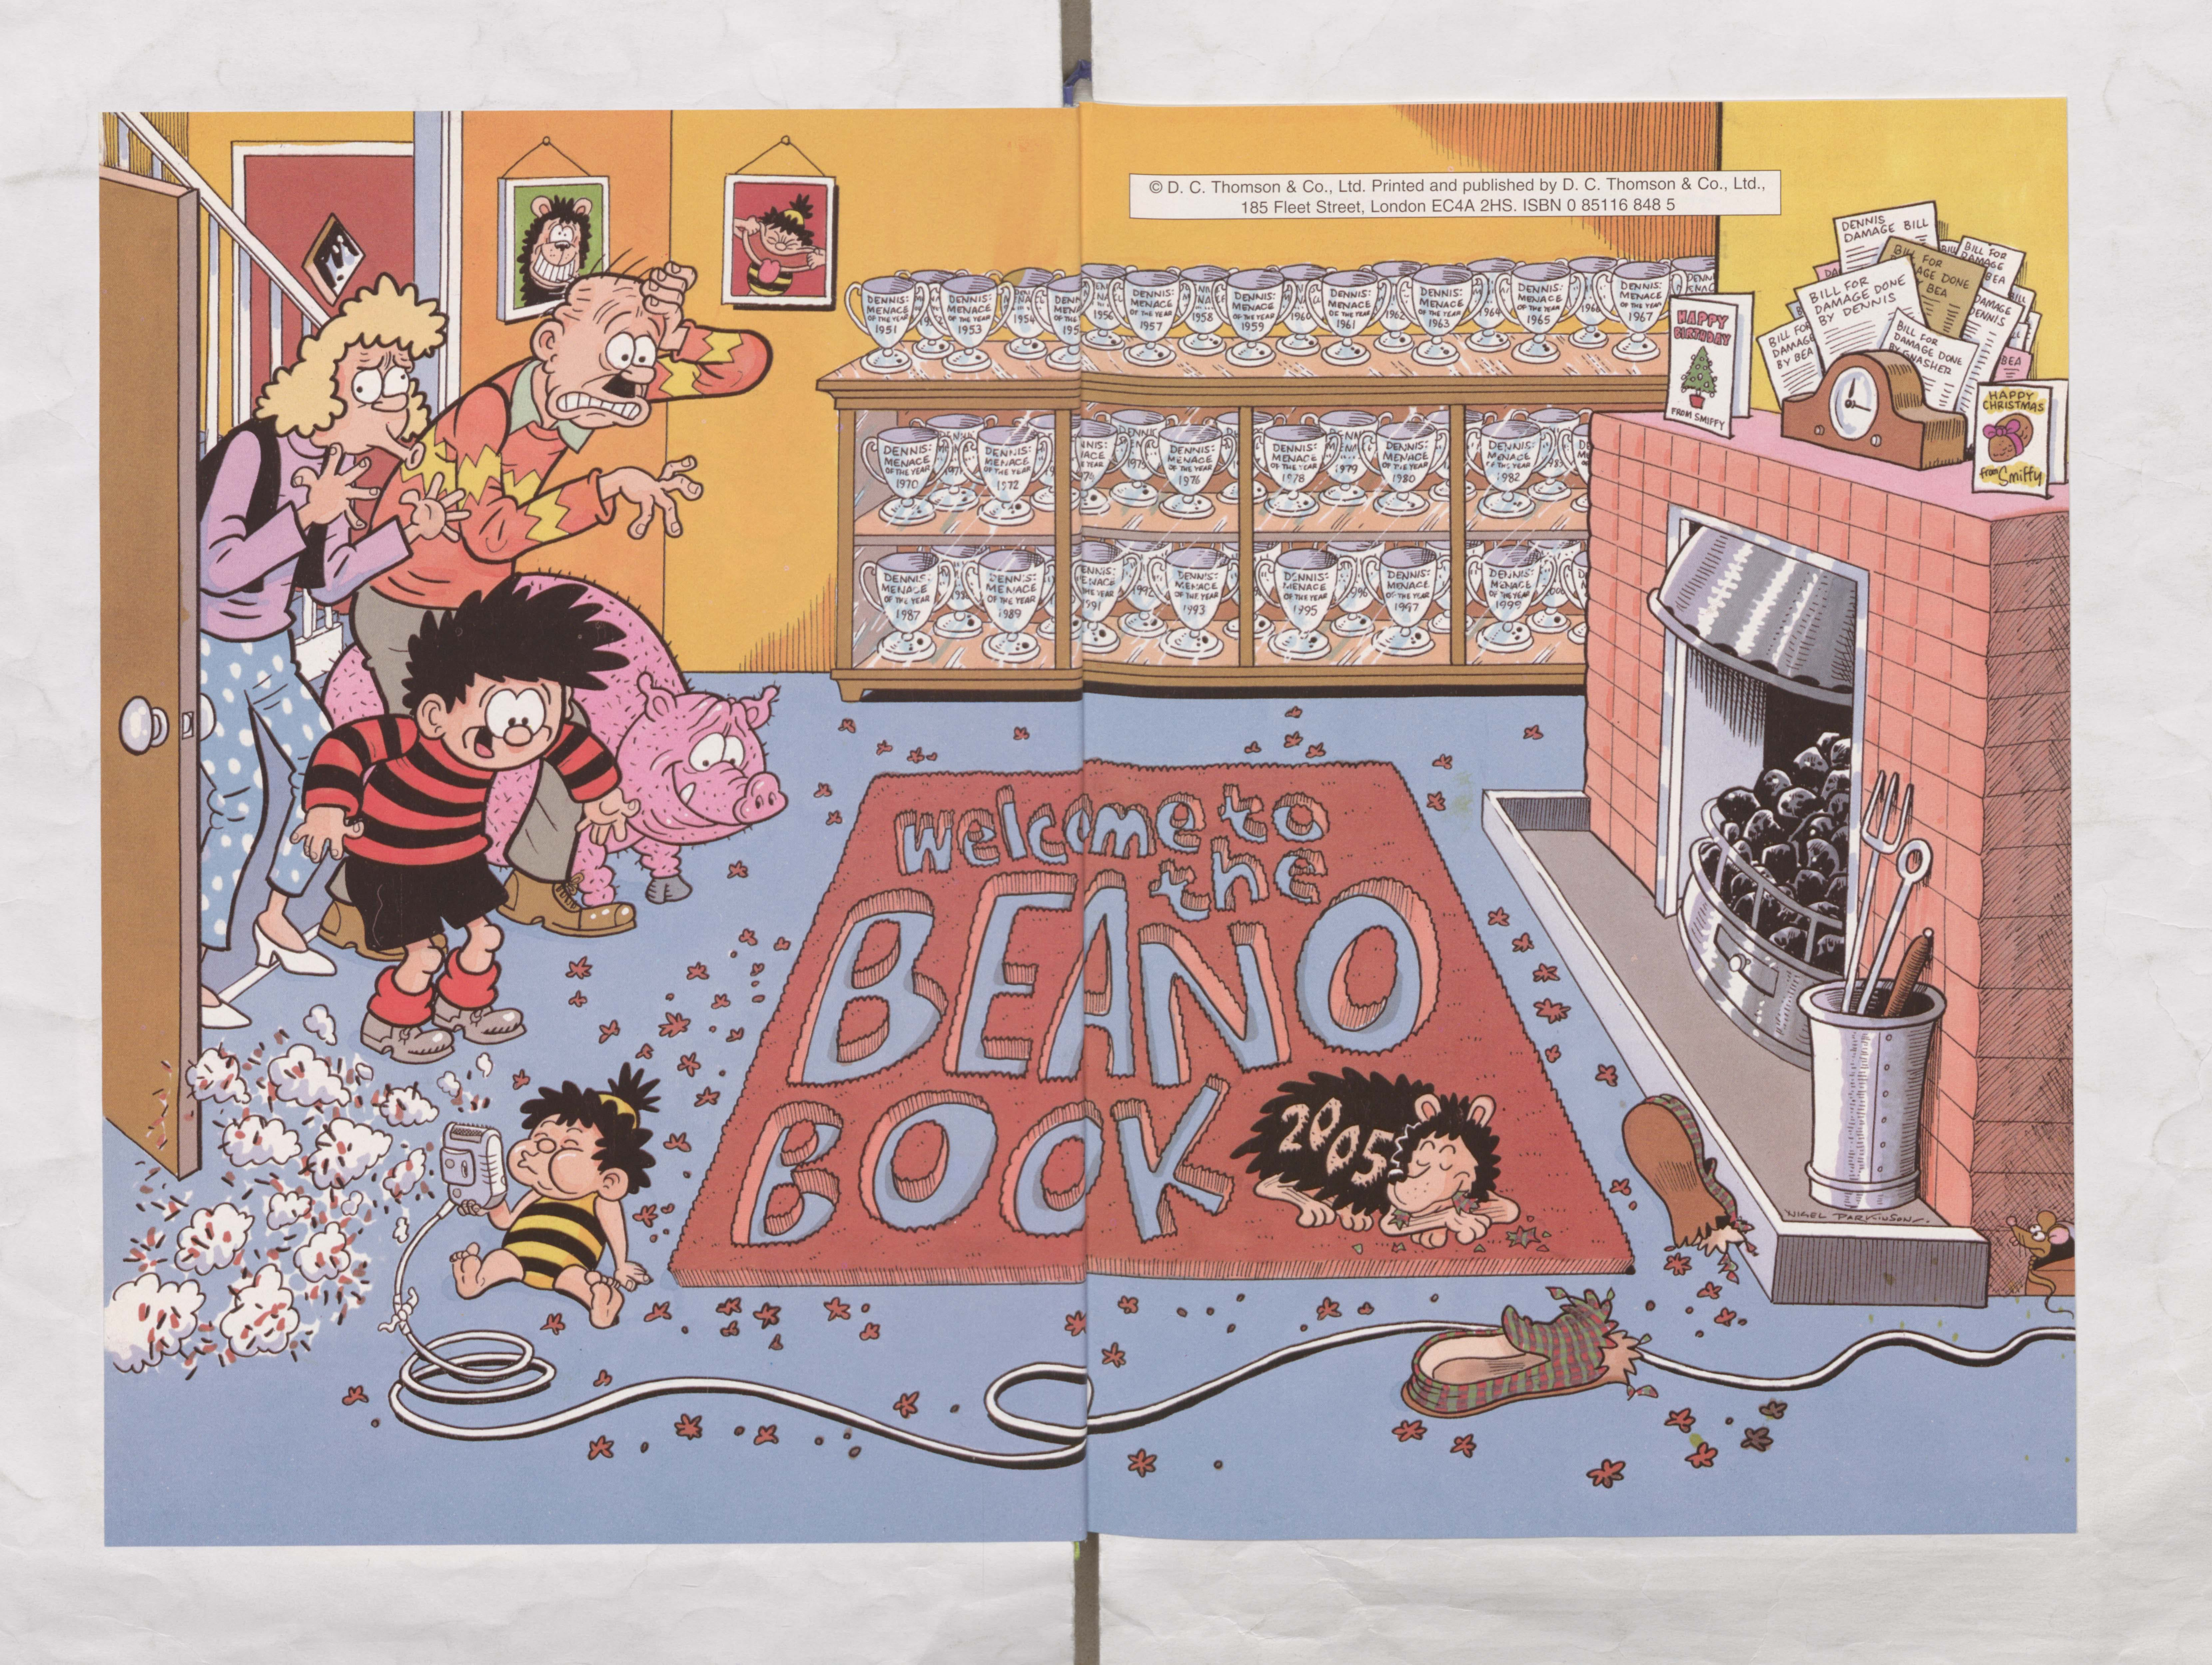 Welcome to the Menace House! - Beano Book 2005 Annual